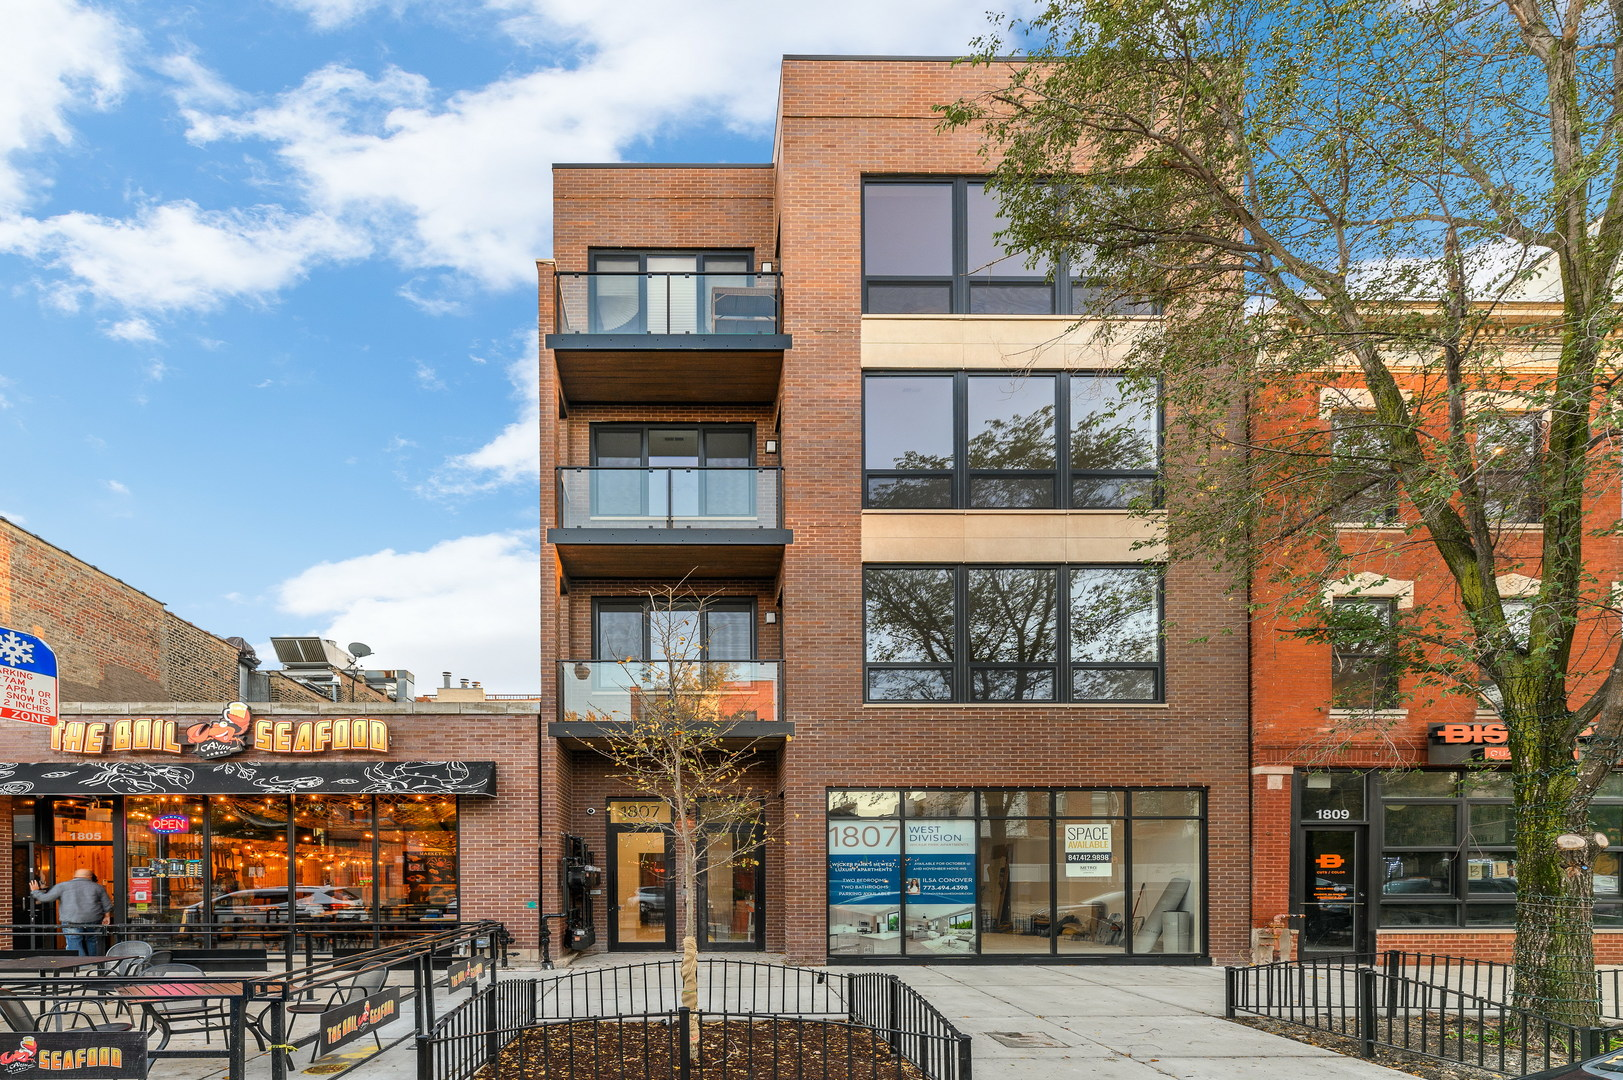 1807 Division Street, Chicago, Illinois 60647, 2 Bedrooms Bedrooms, ,2 BathroomsBathrooms,Residential Rental,For Rent,Division,10910087